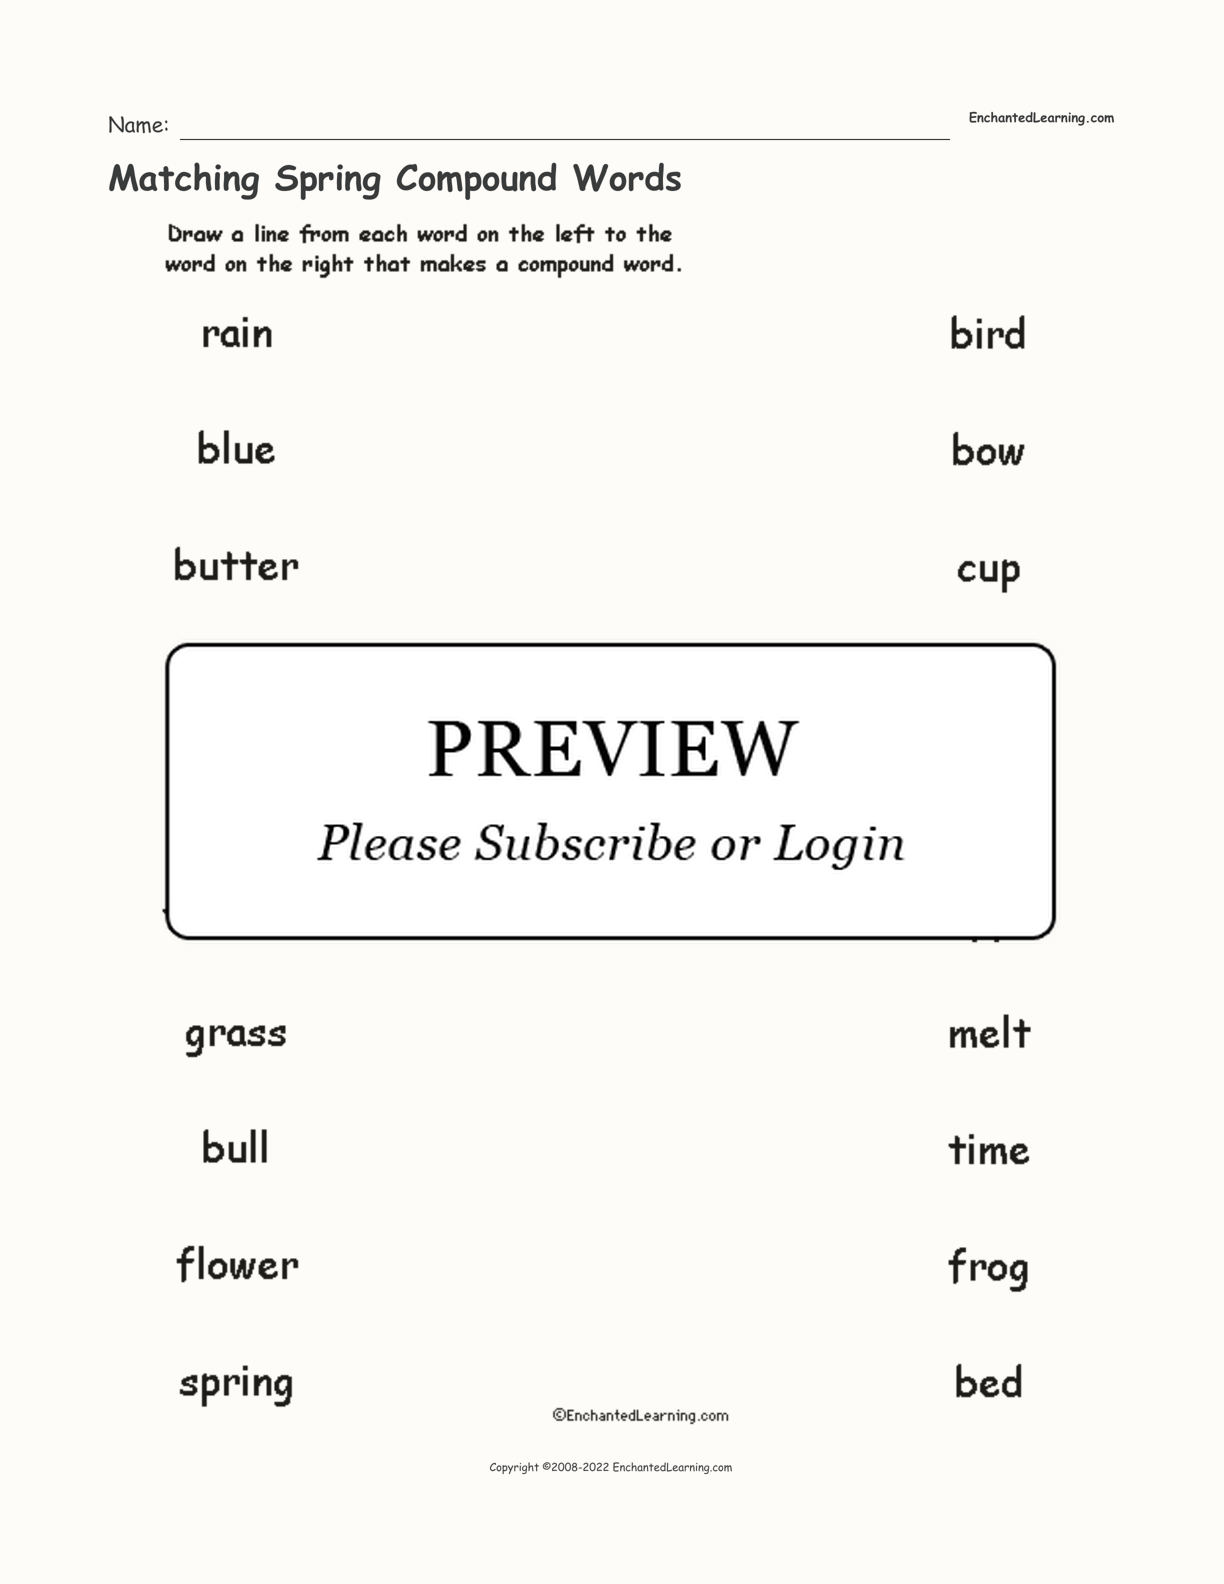 Matching Spring Compound Words interactive worksheet page 1